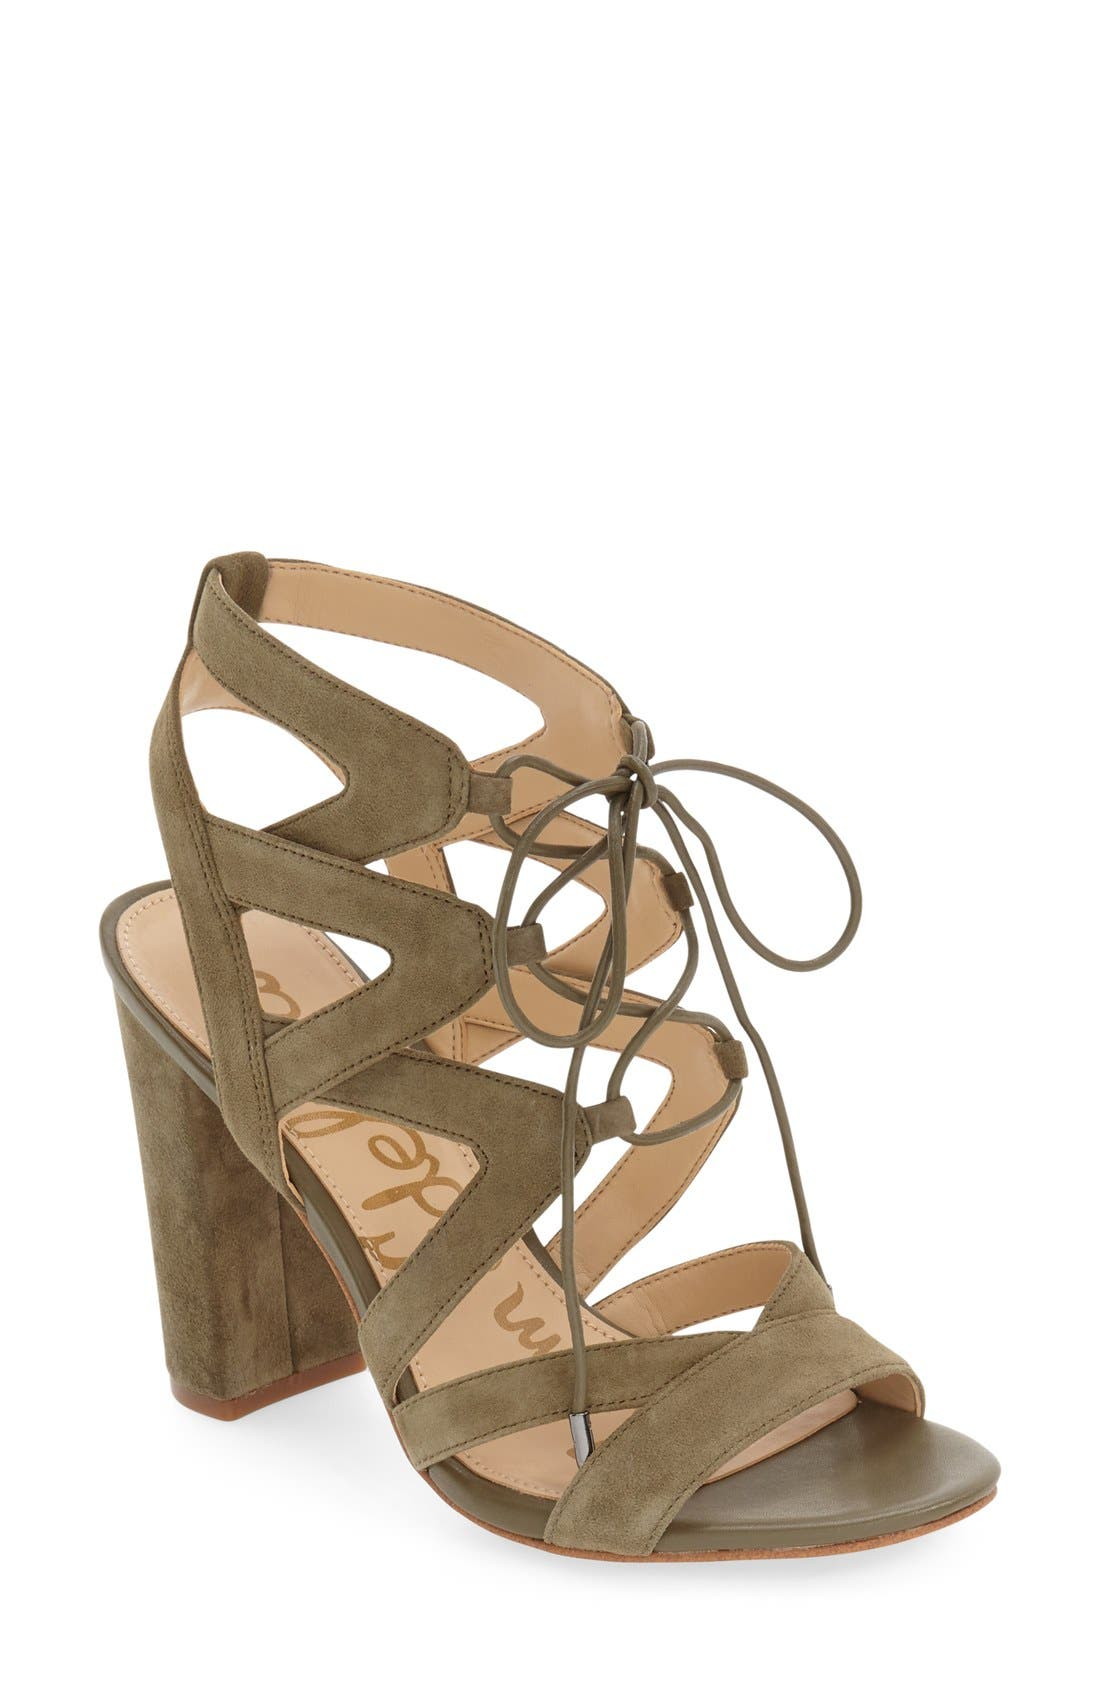 Alternate Image 1 Selected - Sam Edelman 'Yardley' Lace-Up Sandal (Women)